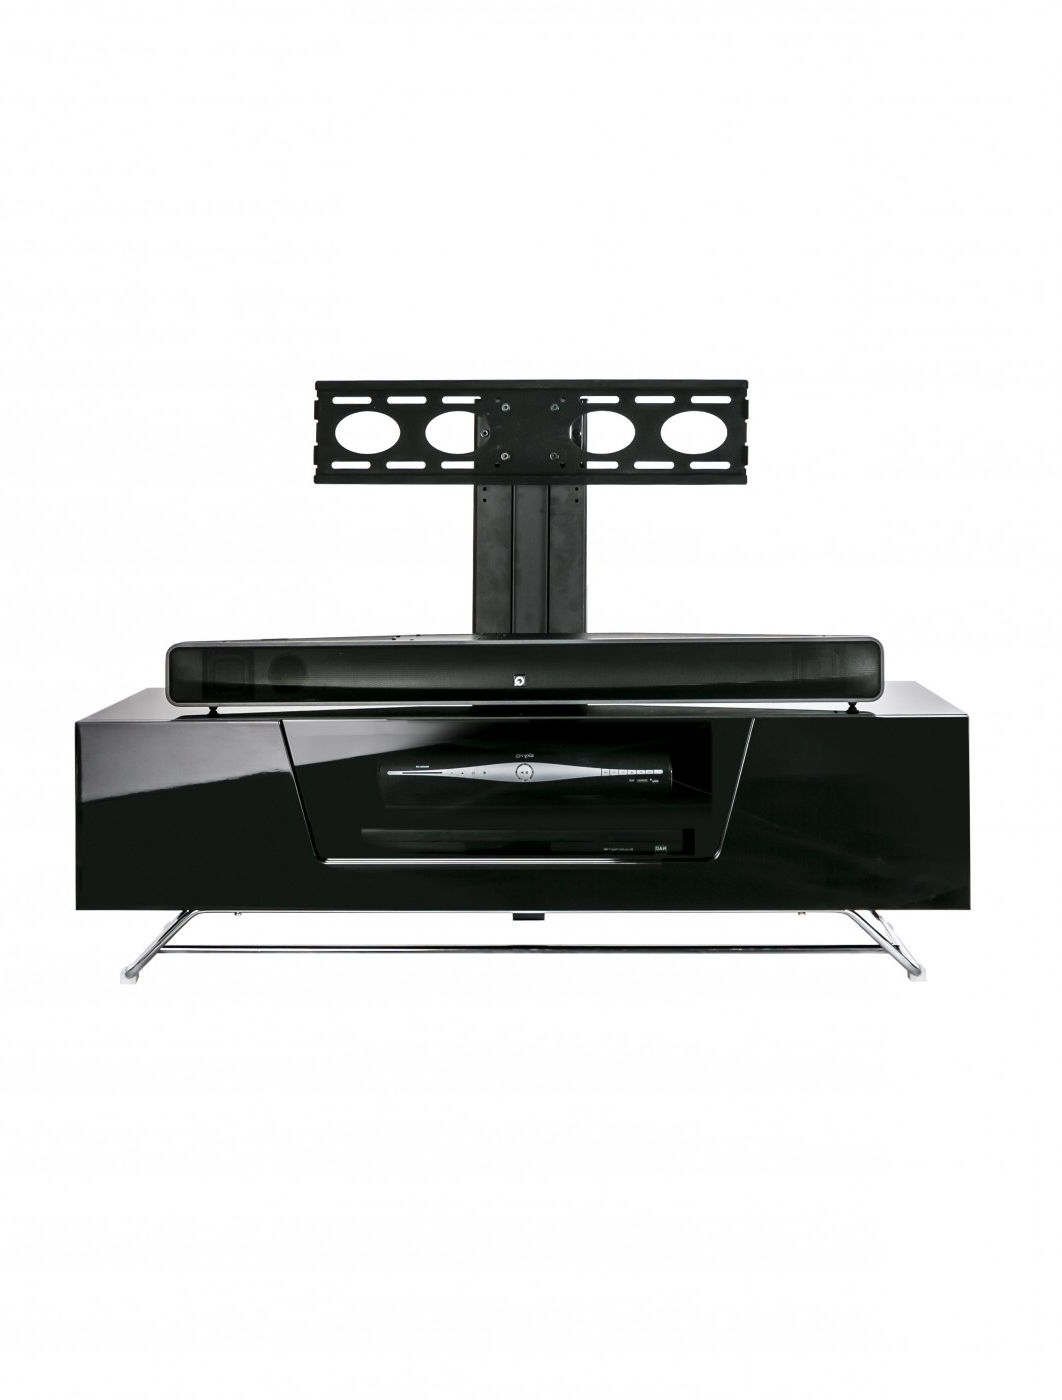 Popular Chromium Tv Stands Intended For Alphason Chromium Cantilever Tv Stand Cro2 1200bkt Bk (View 16 of 25)